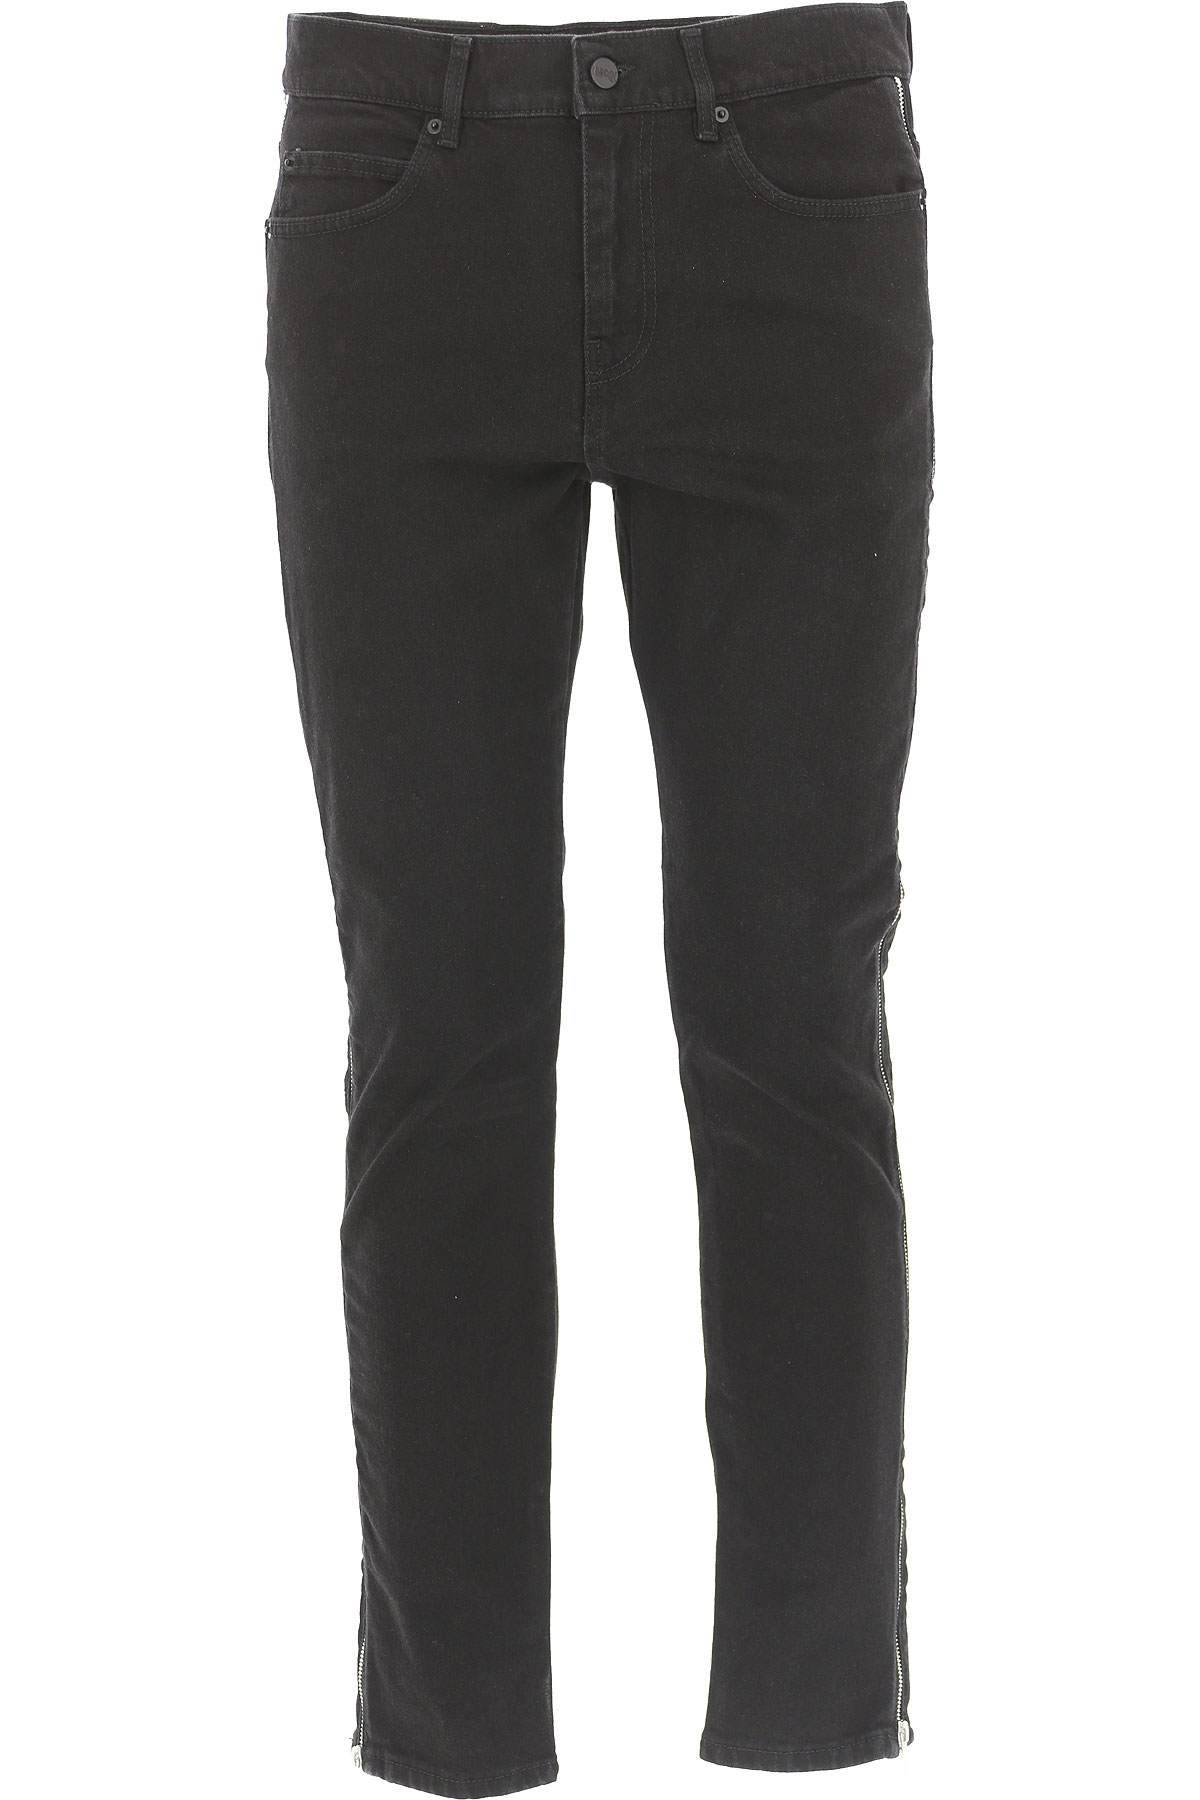 Alexander McQueen McQ Jeans On Sale in Outlet, Black, Cotton, 2019, 29 31 32 33 34 36